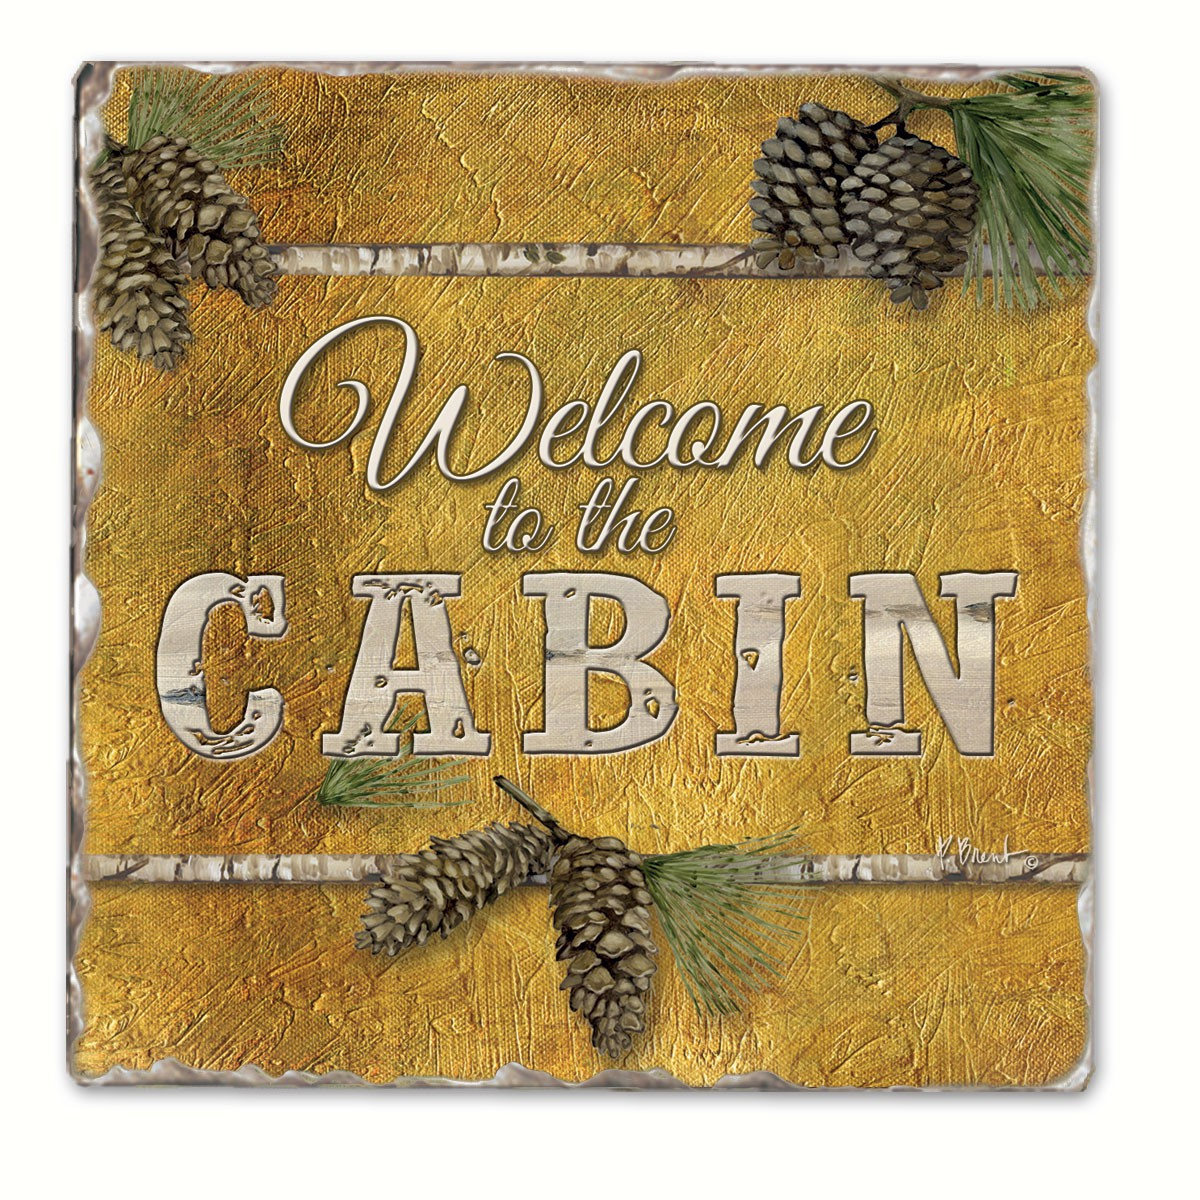 Welcome to the Cabin Single Tumbled Tile Coaster